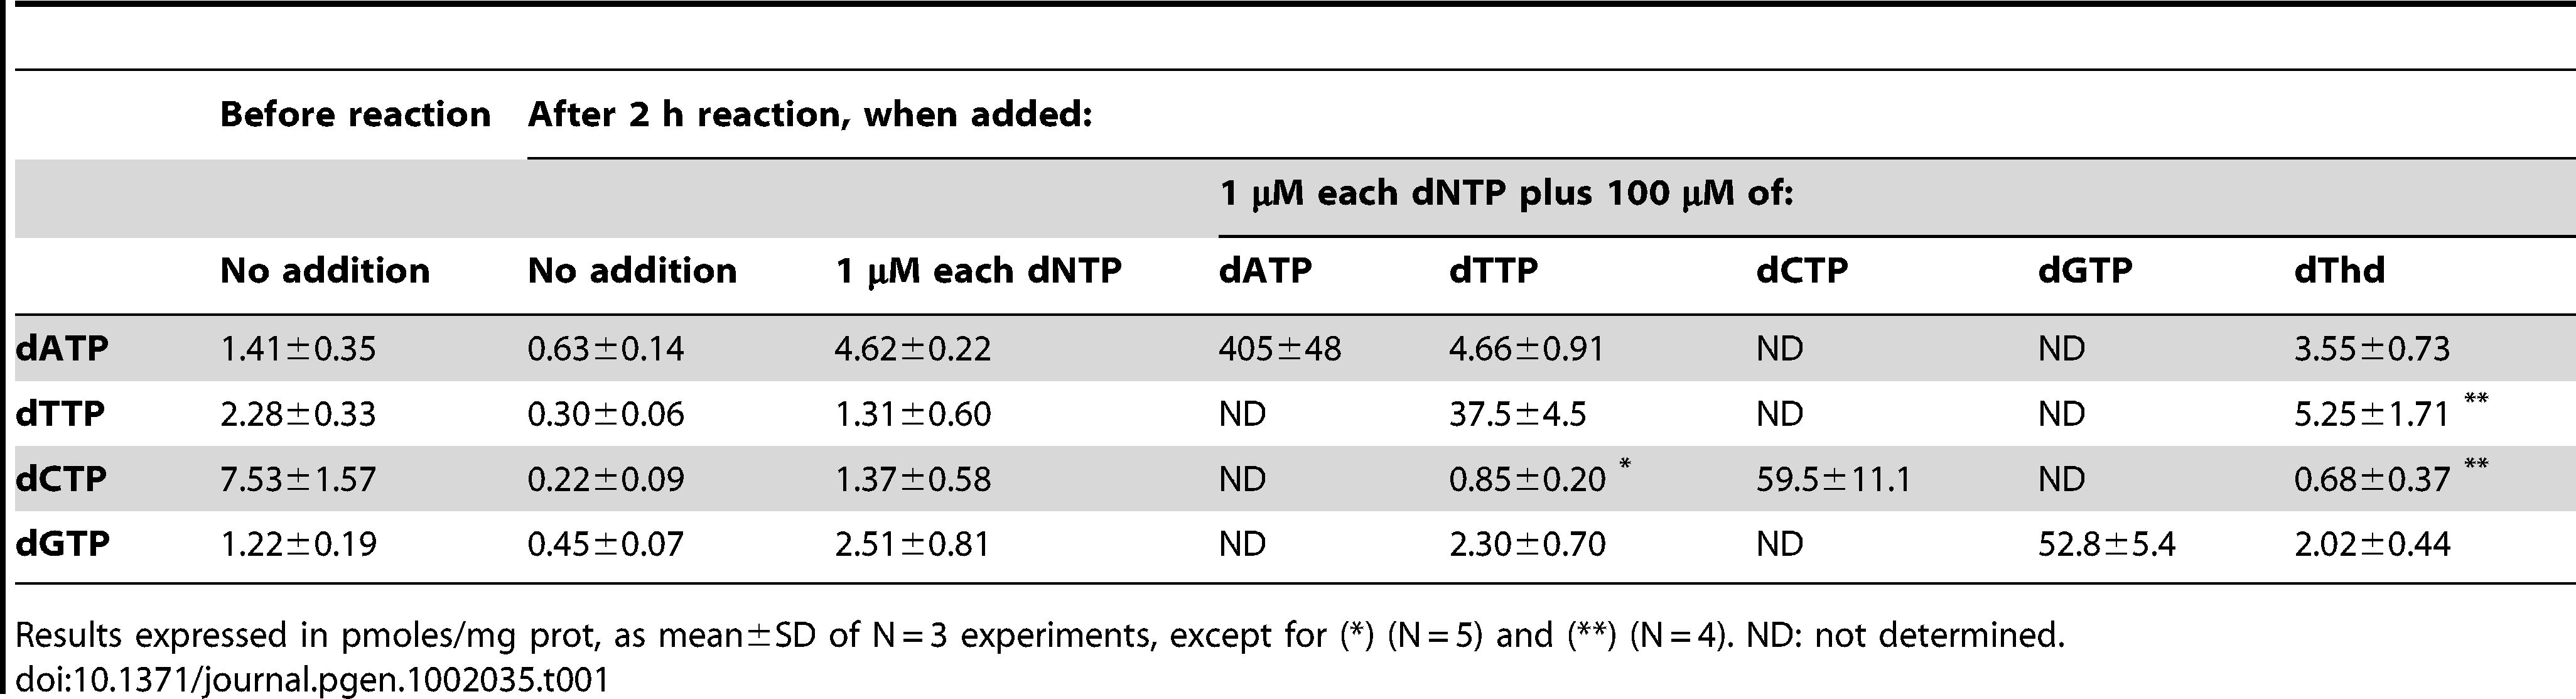 Effect of exogenous dNTP addition on intramitochondrial dNTP pools.